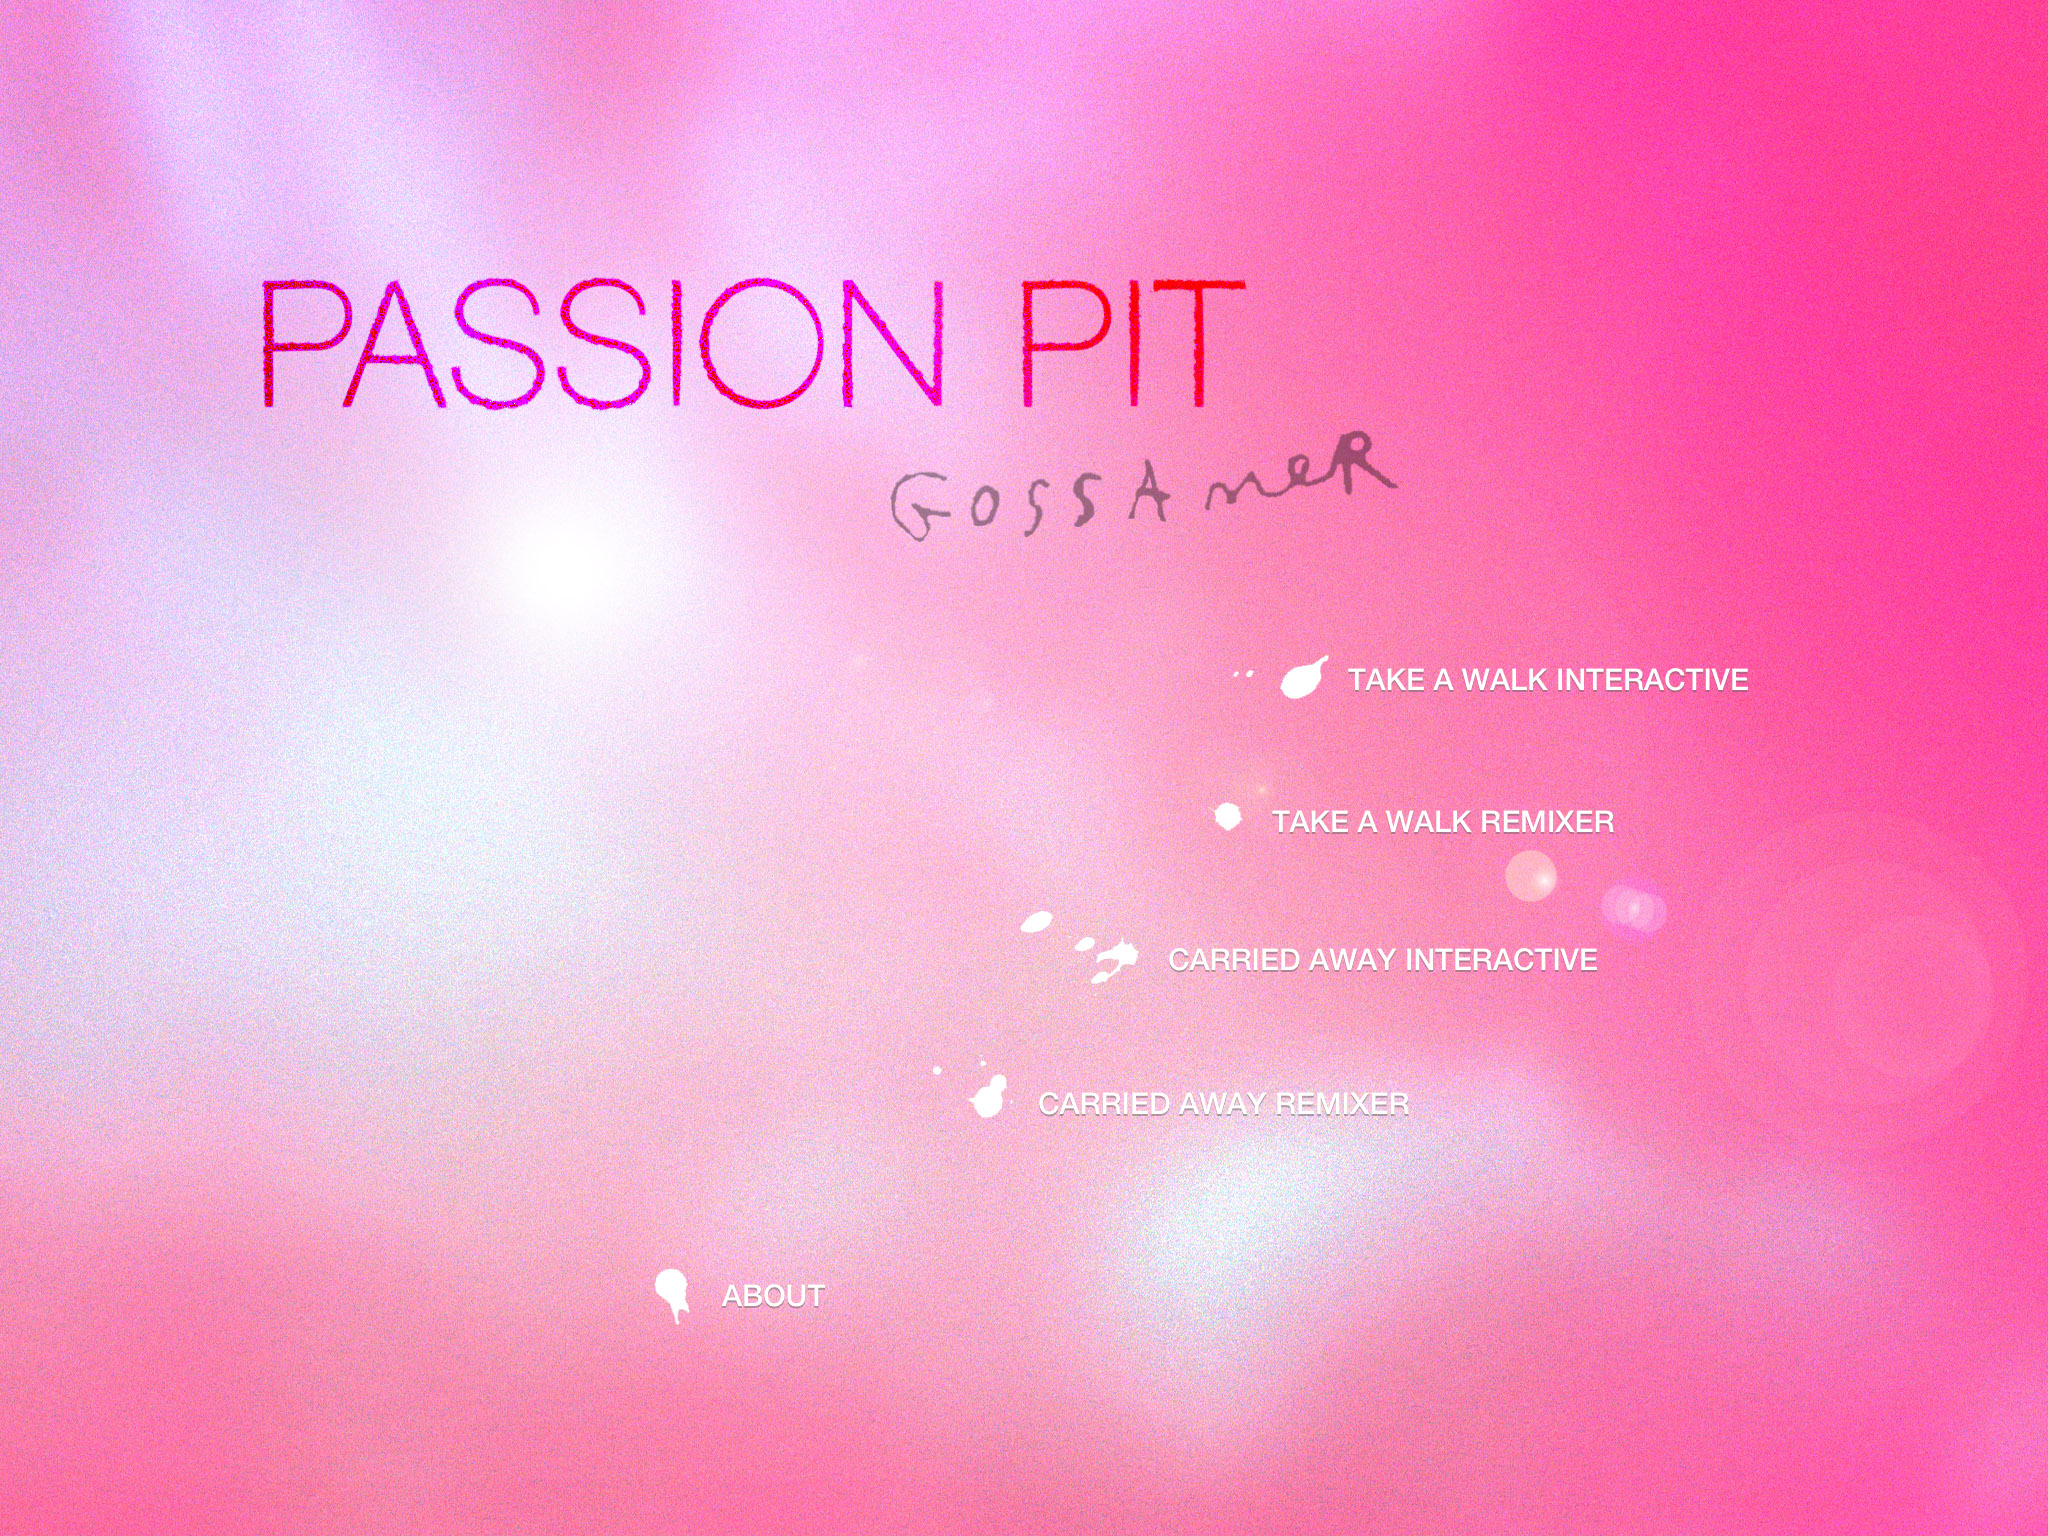 Passion-Pit-screenshot-iPad-2.jpg